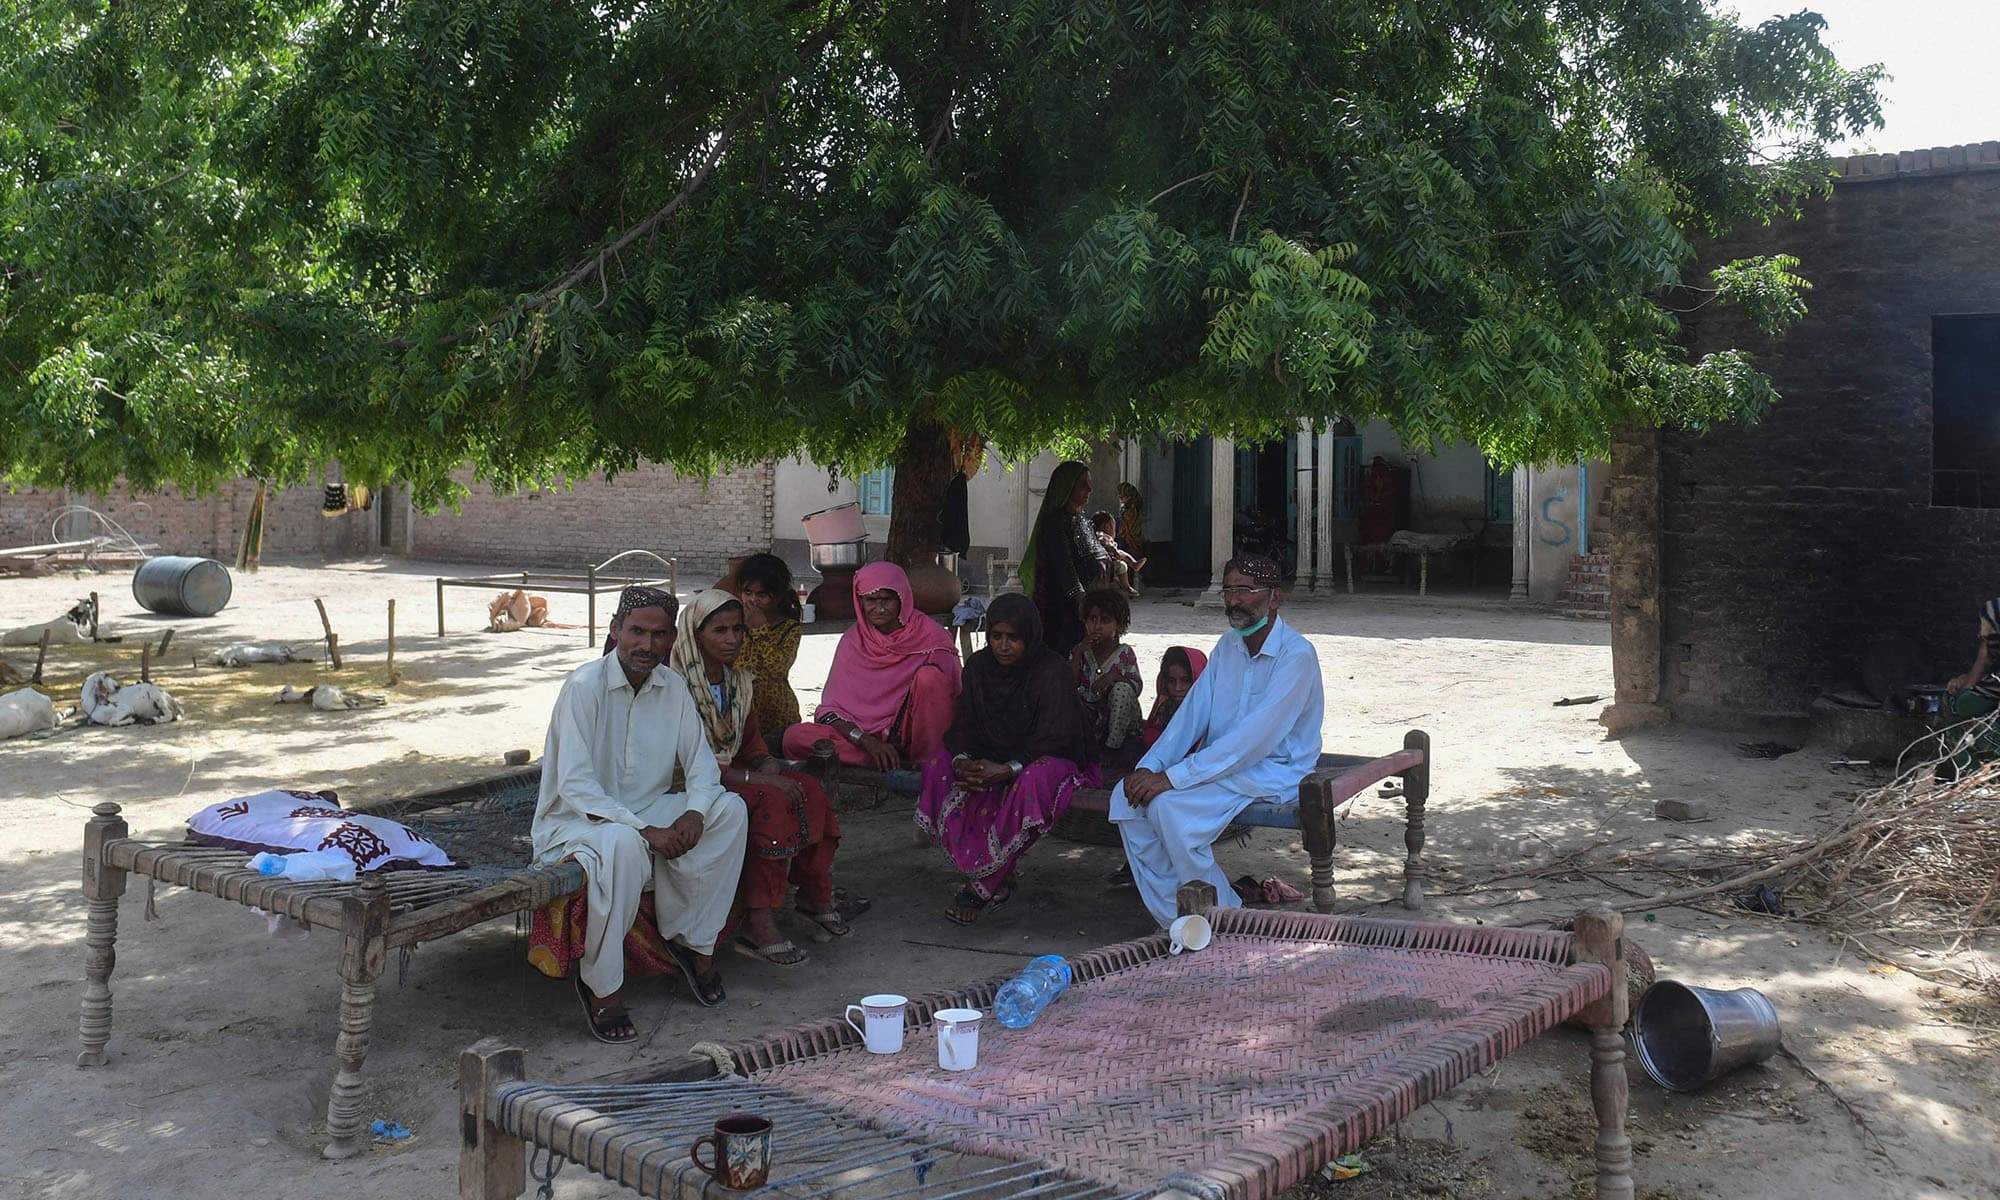 """In this picture taken on June 8, 2021 school teacher Ali Nawaz (R), who helped with the rescue efforts of the train collision, gestures as he sits with his family at his home near the train accident site in Daharki in Sindh Province. - As an express train hurtled through farmland in Pakistan and smashed into the carriages of another service that had derailed minutes earlier, a family of nearby villagers was jolted awake. """"The blast of the collision was so loud that we woke up in panic,"""" said Ali Nawaz, describing the start of a frantic bid to help passengers from the wreckage of the double dis"""